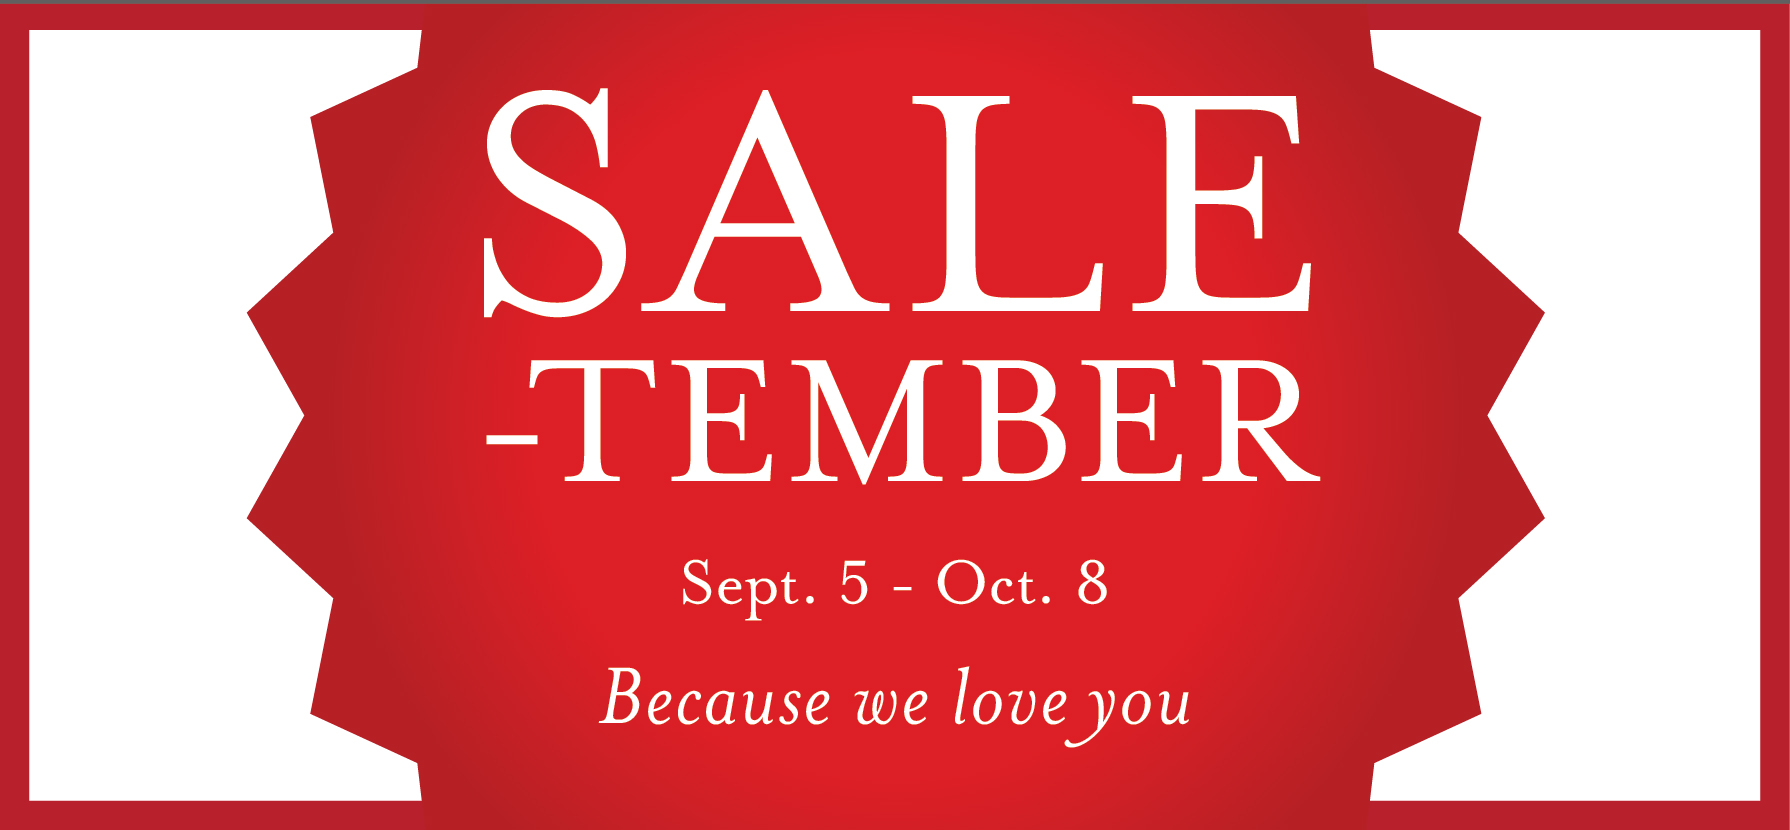 Sale-tember at Eataly USA